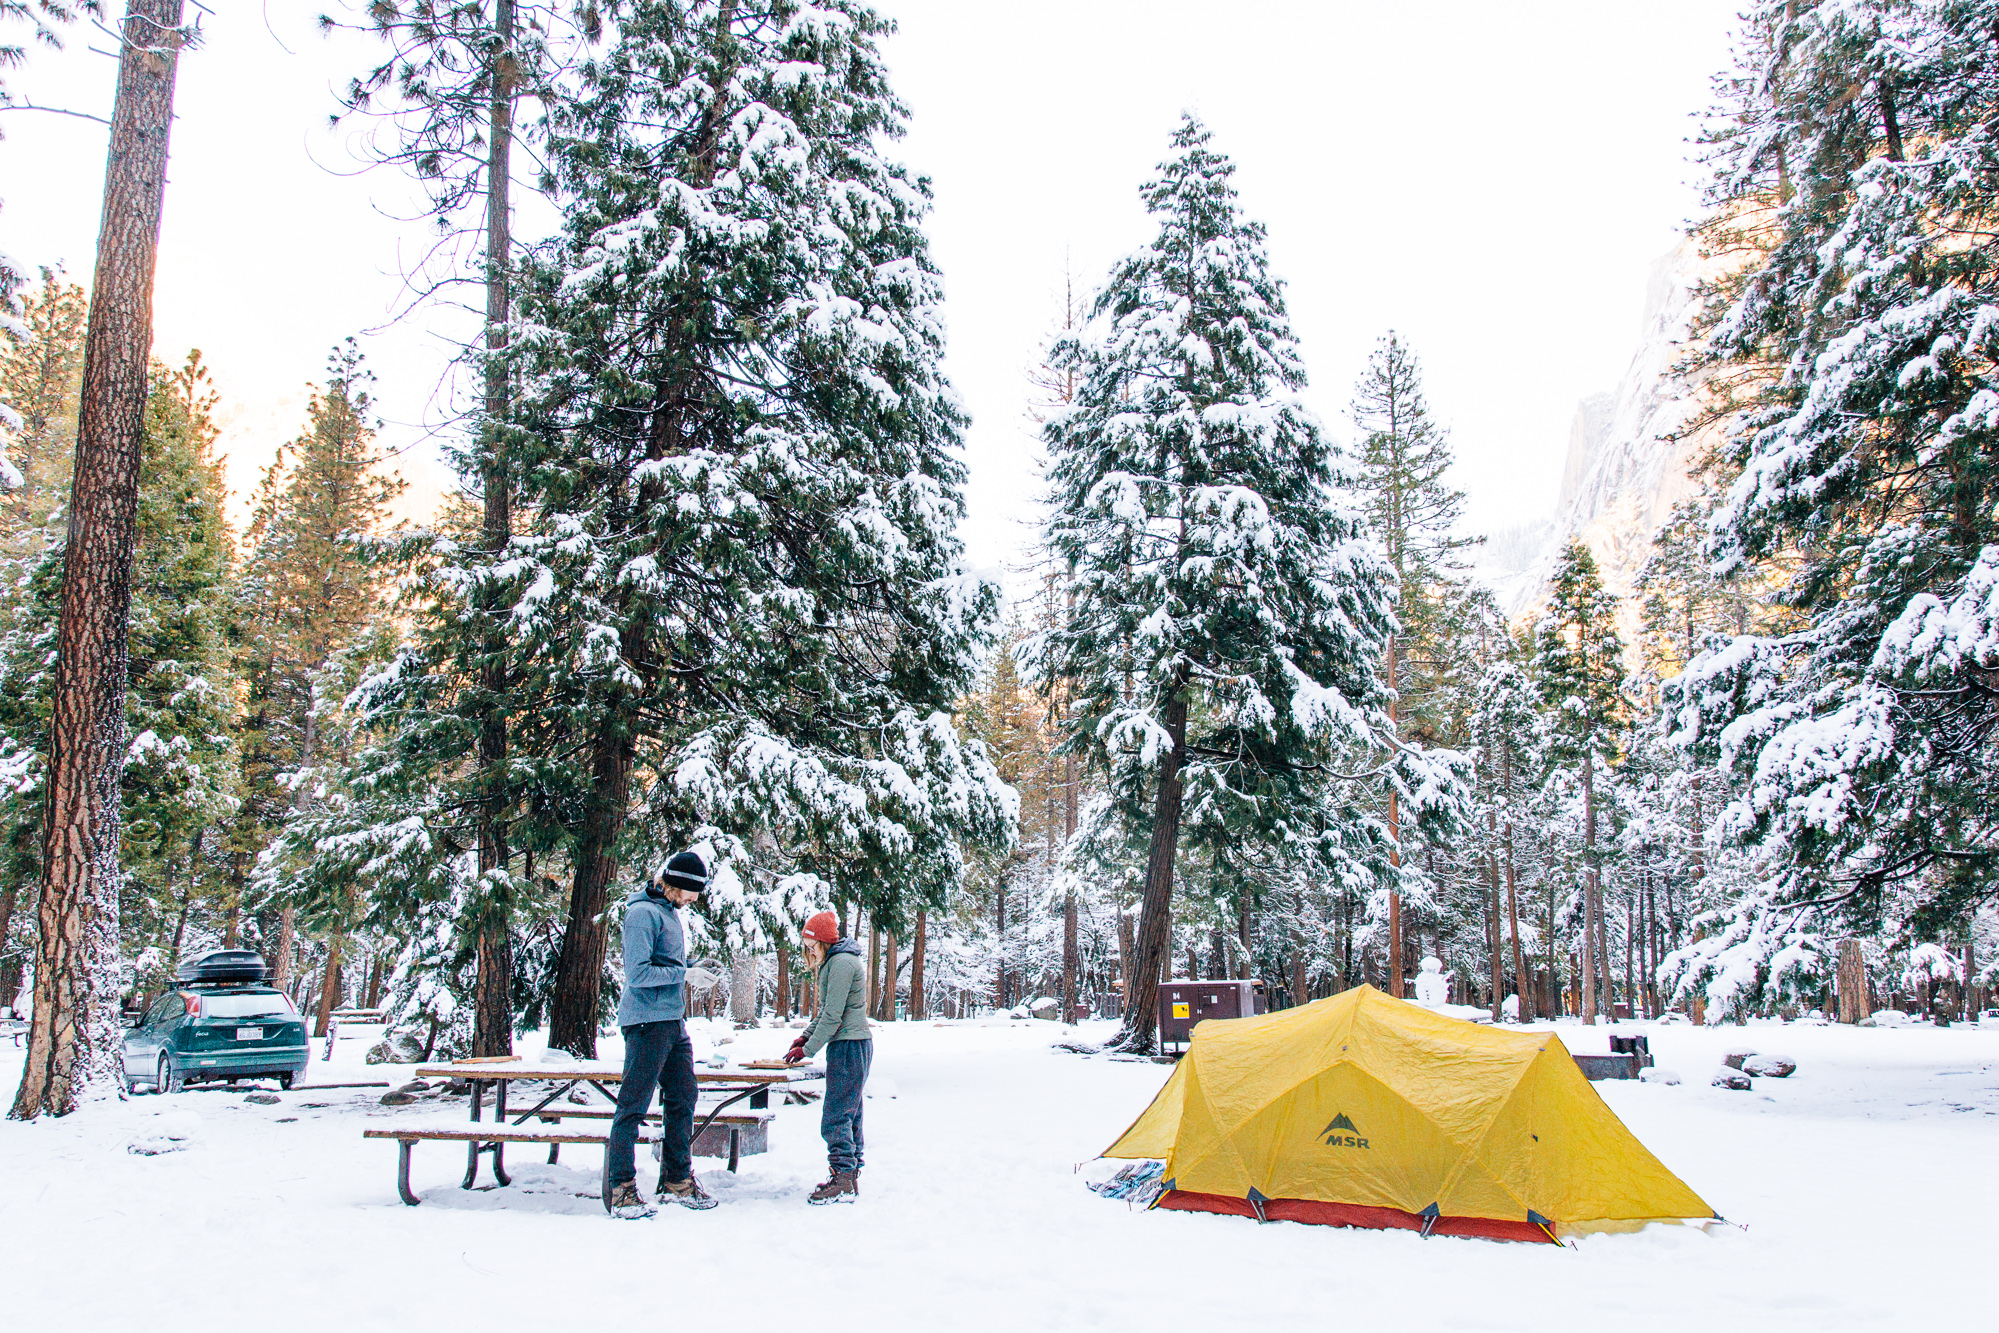 4 Camping Cozy Up With These 4 Winter Camping Recipes Therm A Rest Blog